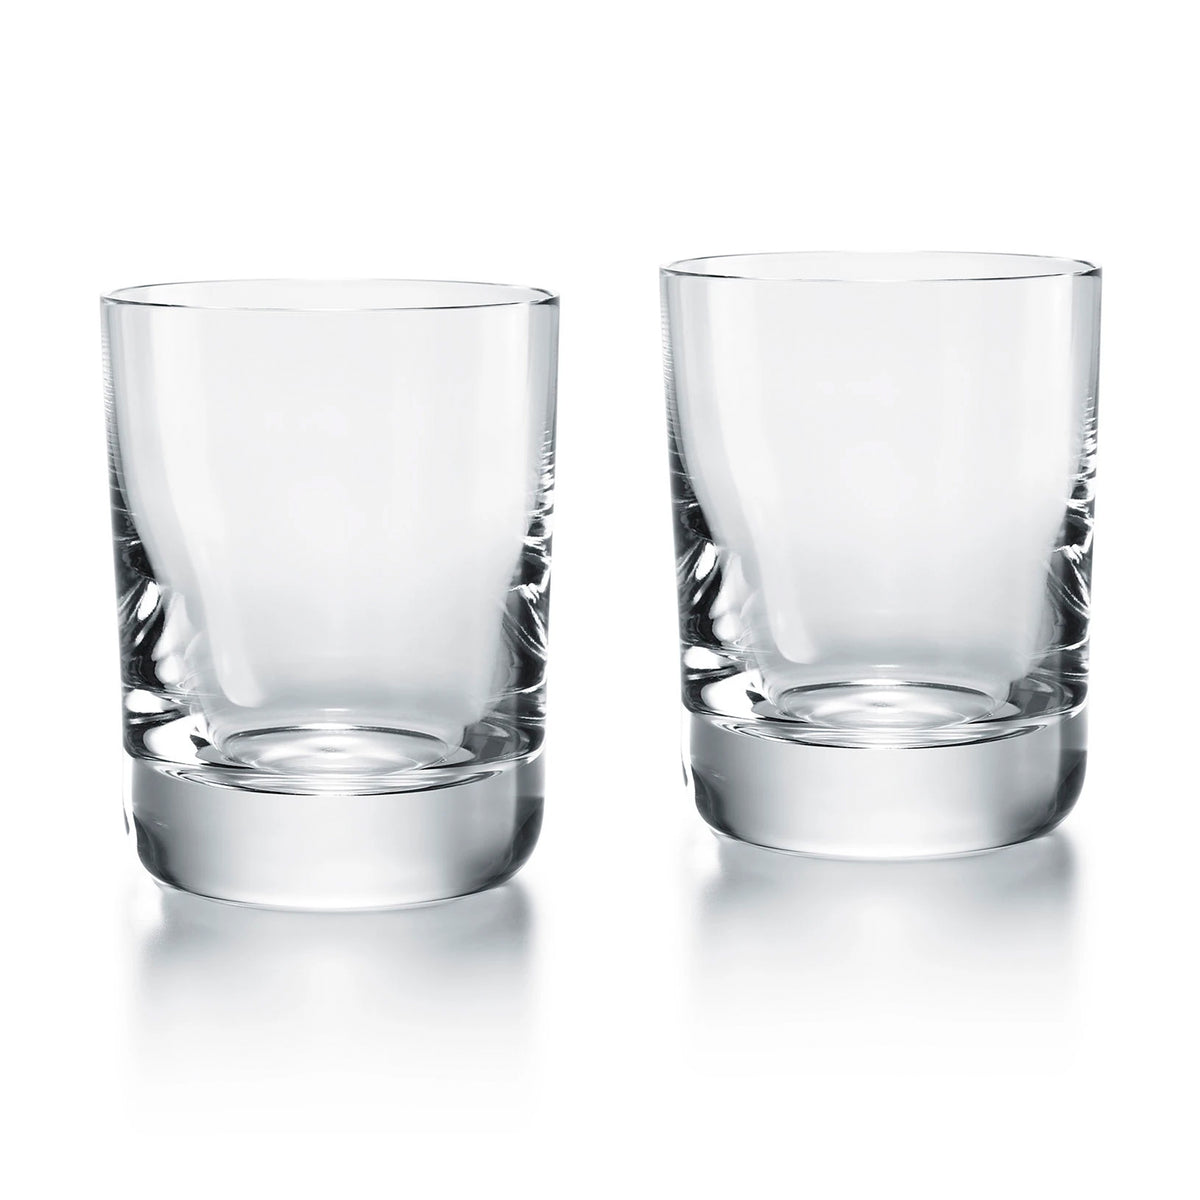 Perfection Tumbler Small, Set of 2